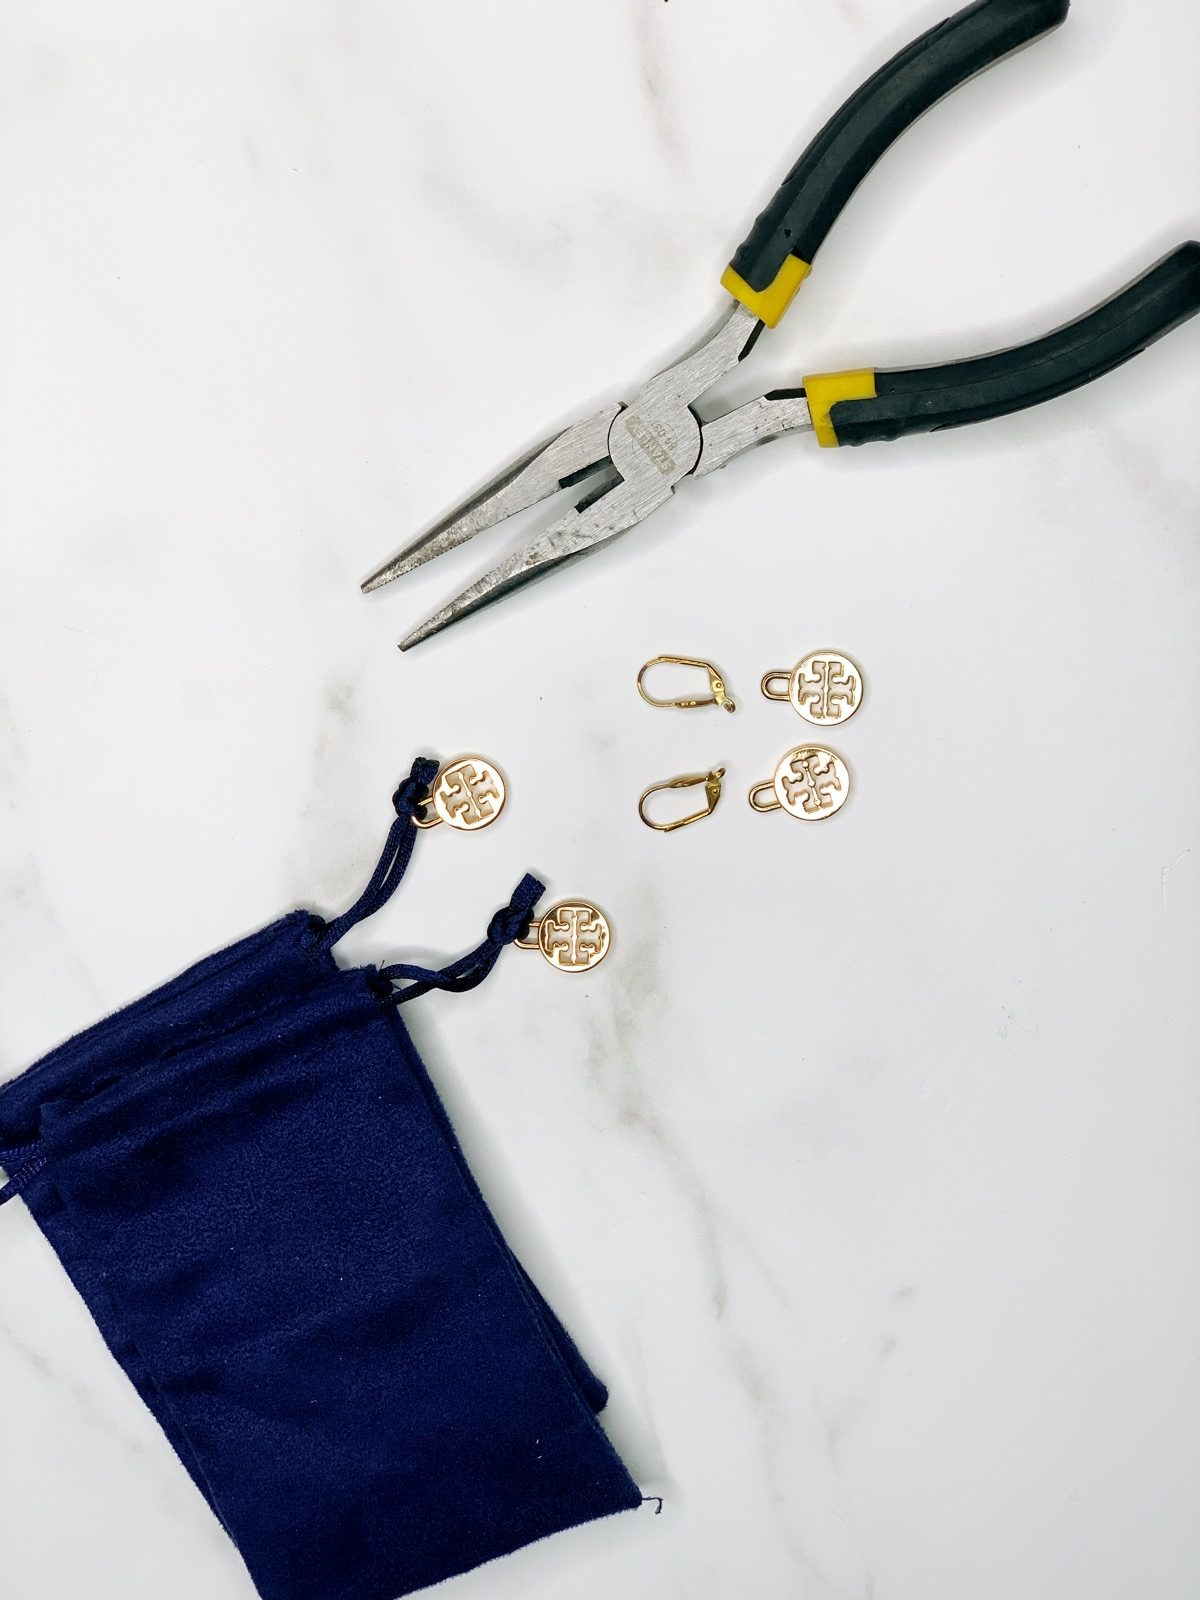 jewelry making supplies on white background